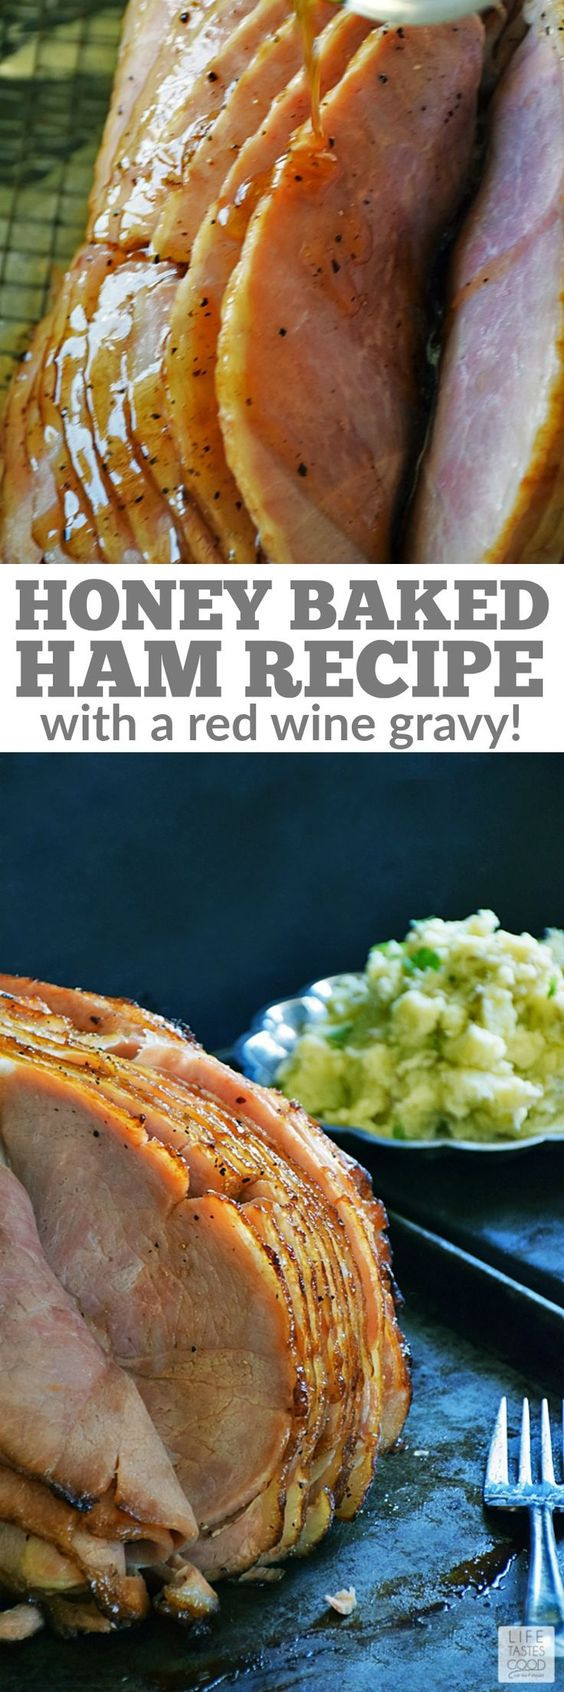 Ham Recipes For Thanksgiving  Honey Baked Ham Recipe